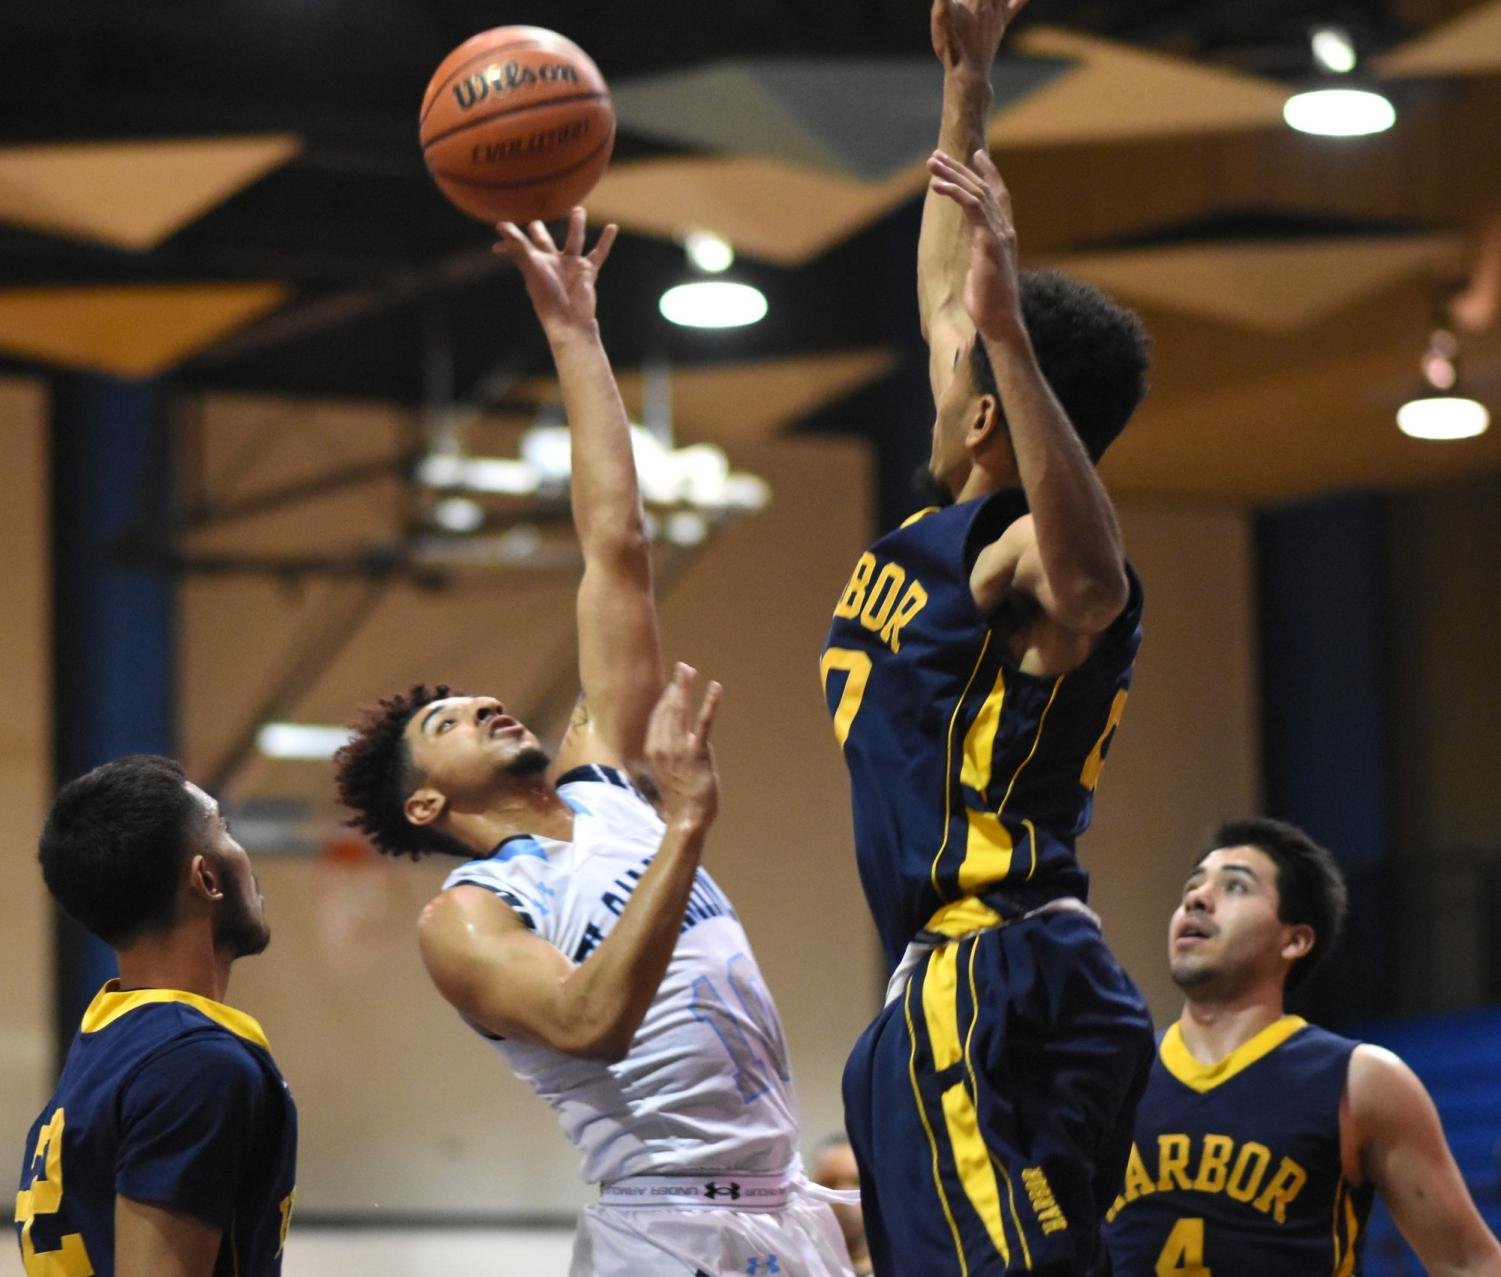 Men's basketball team loses against LA Harbor in home game